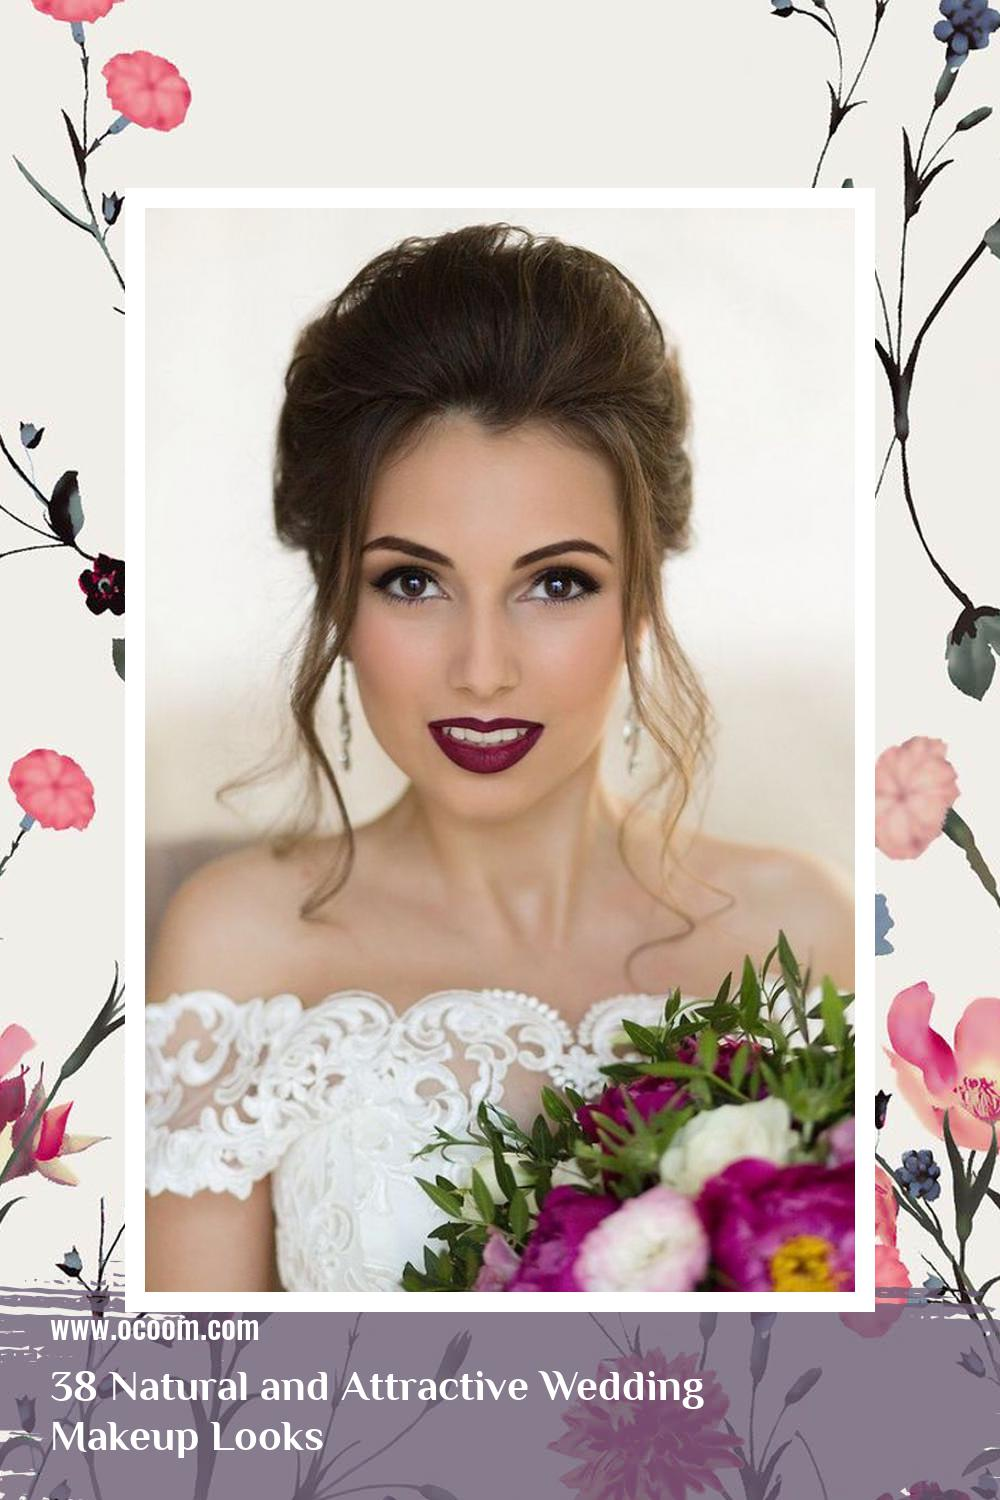 38 Natural and Attractive Wedding Makeup Looks 14